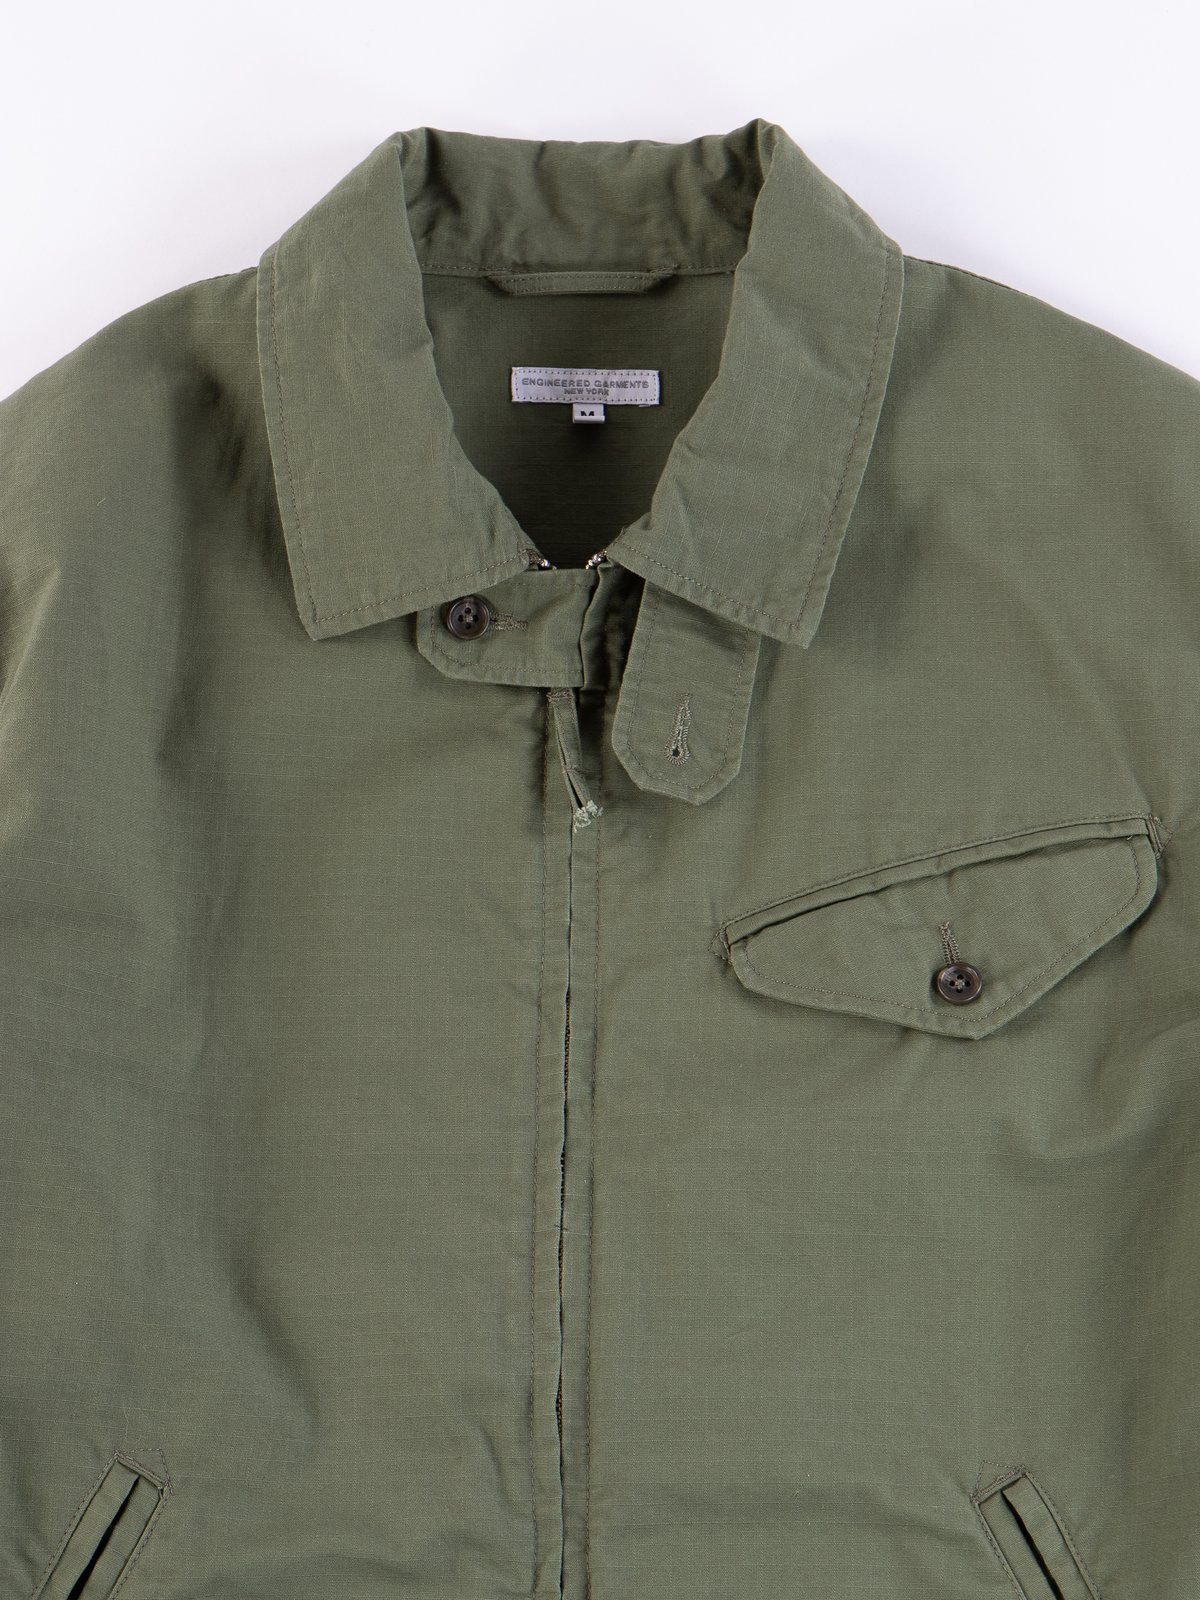 Olive Cotton Ripstop Driver Jacket - Image 3